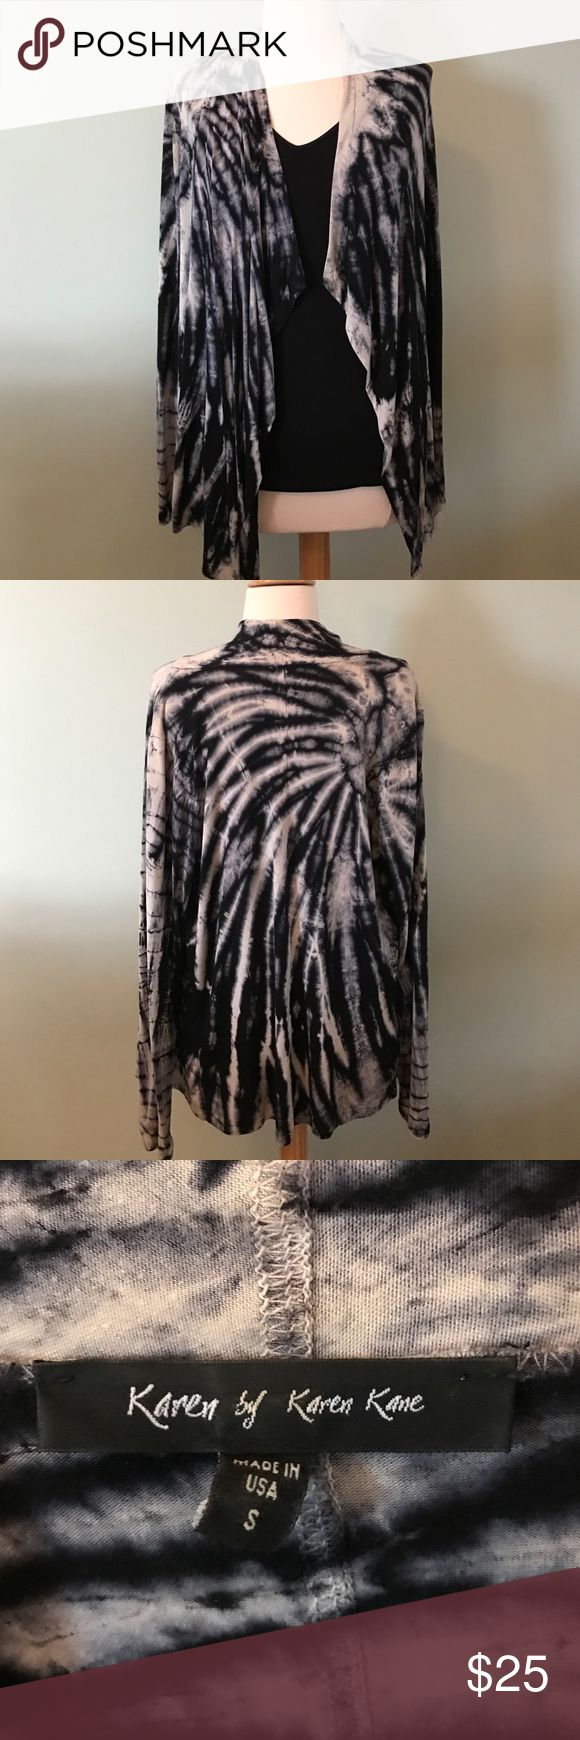 Karen Kane Print Cardigan Very soft with the luxurious feel, cotton with a little bit of stretch cardigan. Fits like a medium. Looks great with leggings and a simple black tank. Karen Kane Sweaters Cardigans